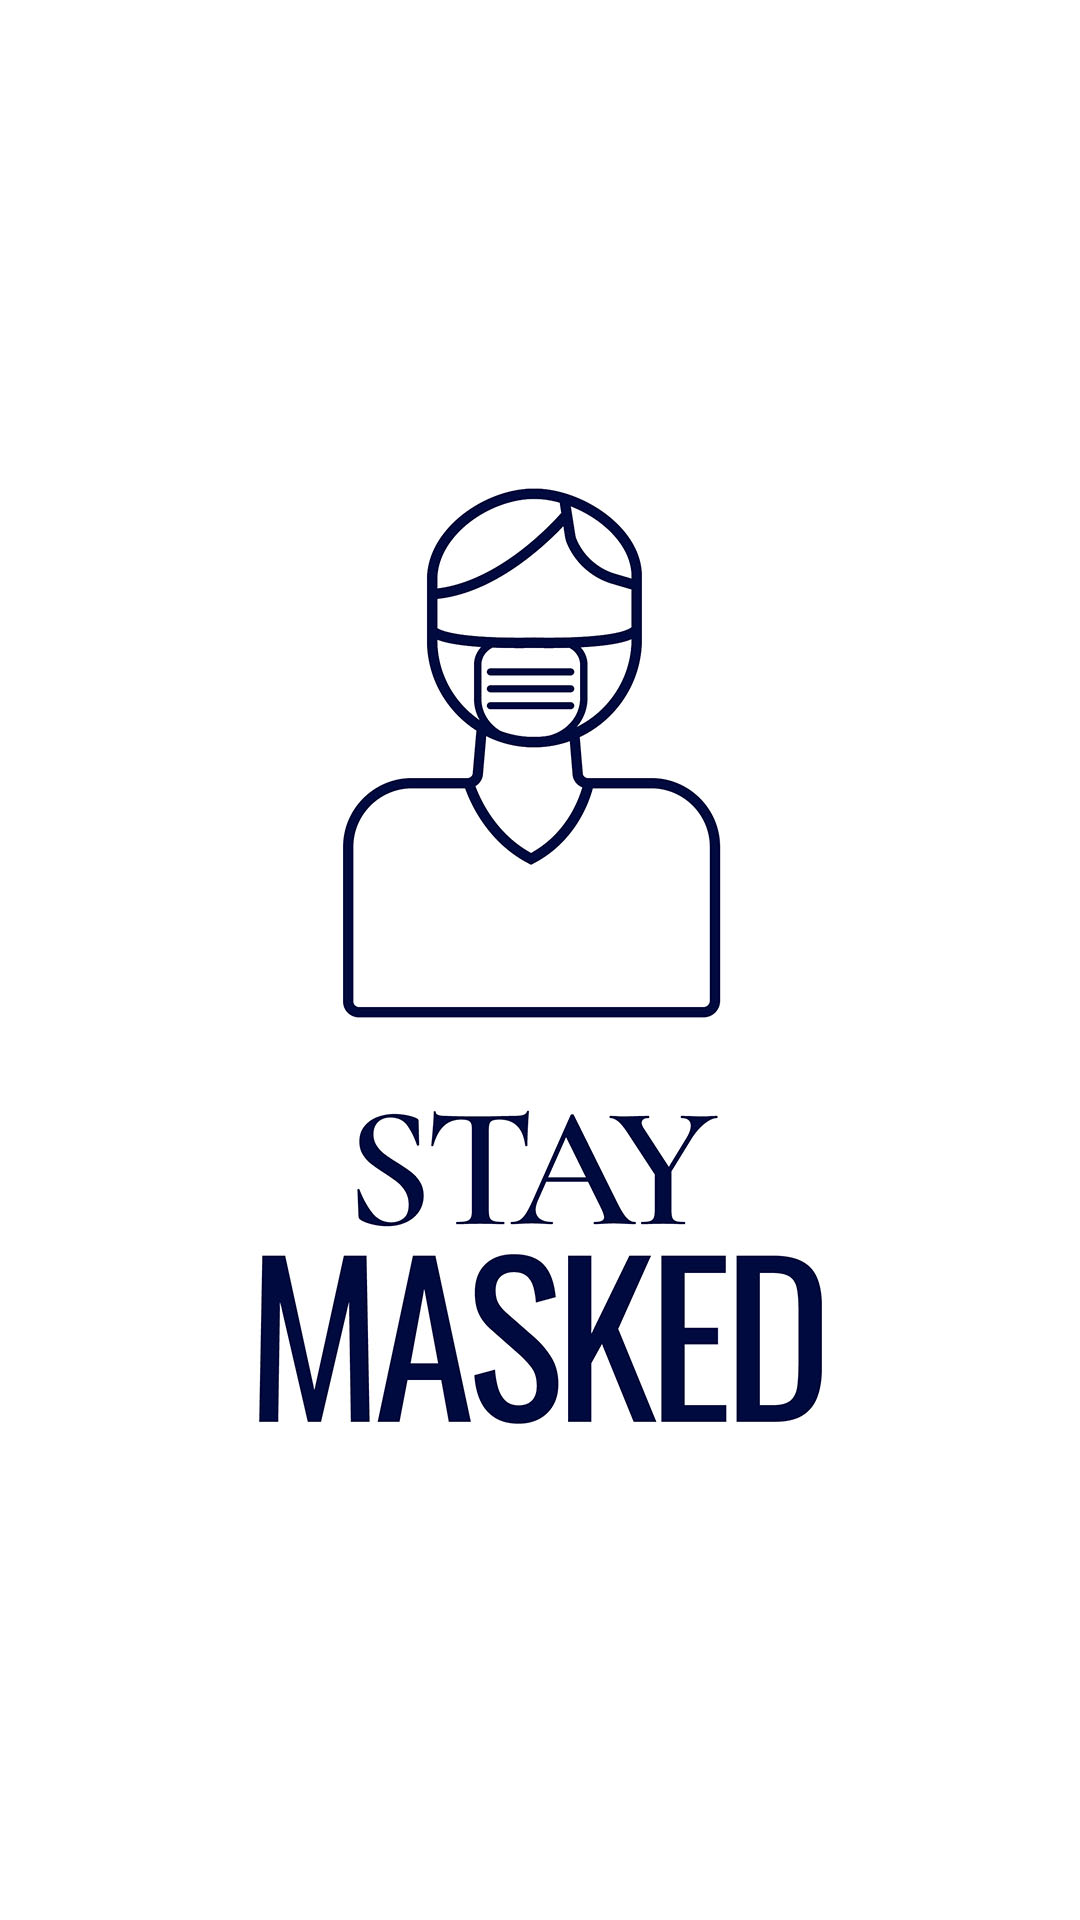 Stay masked